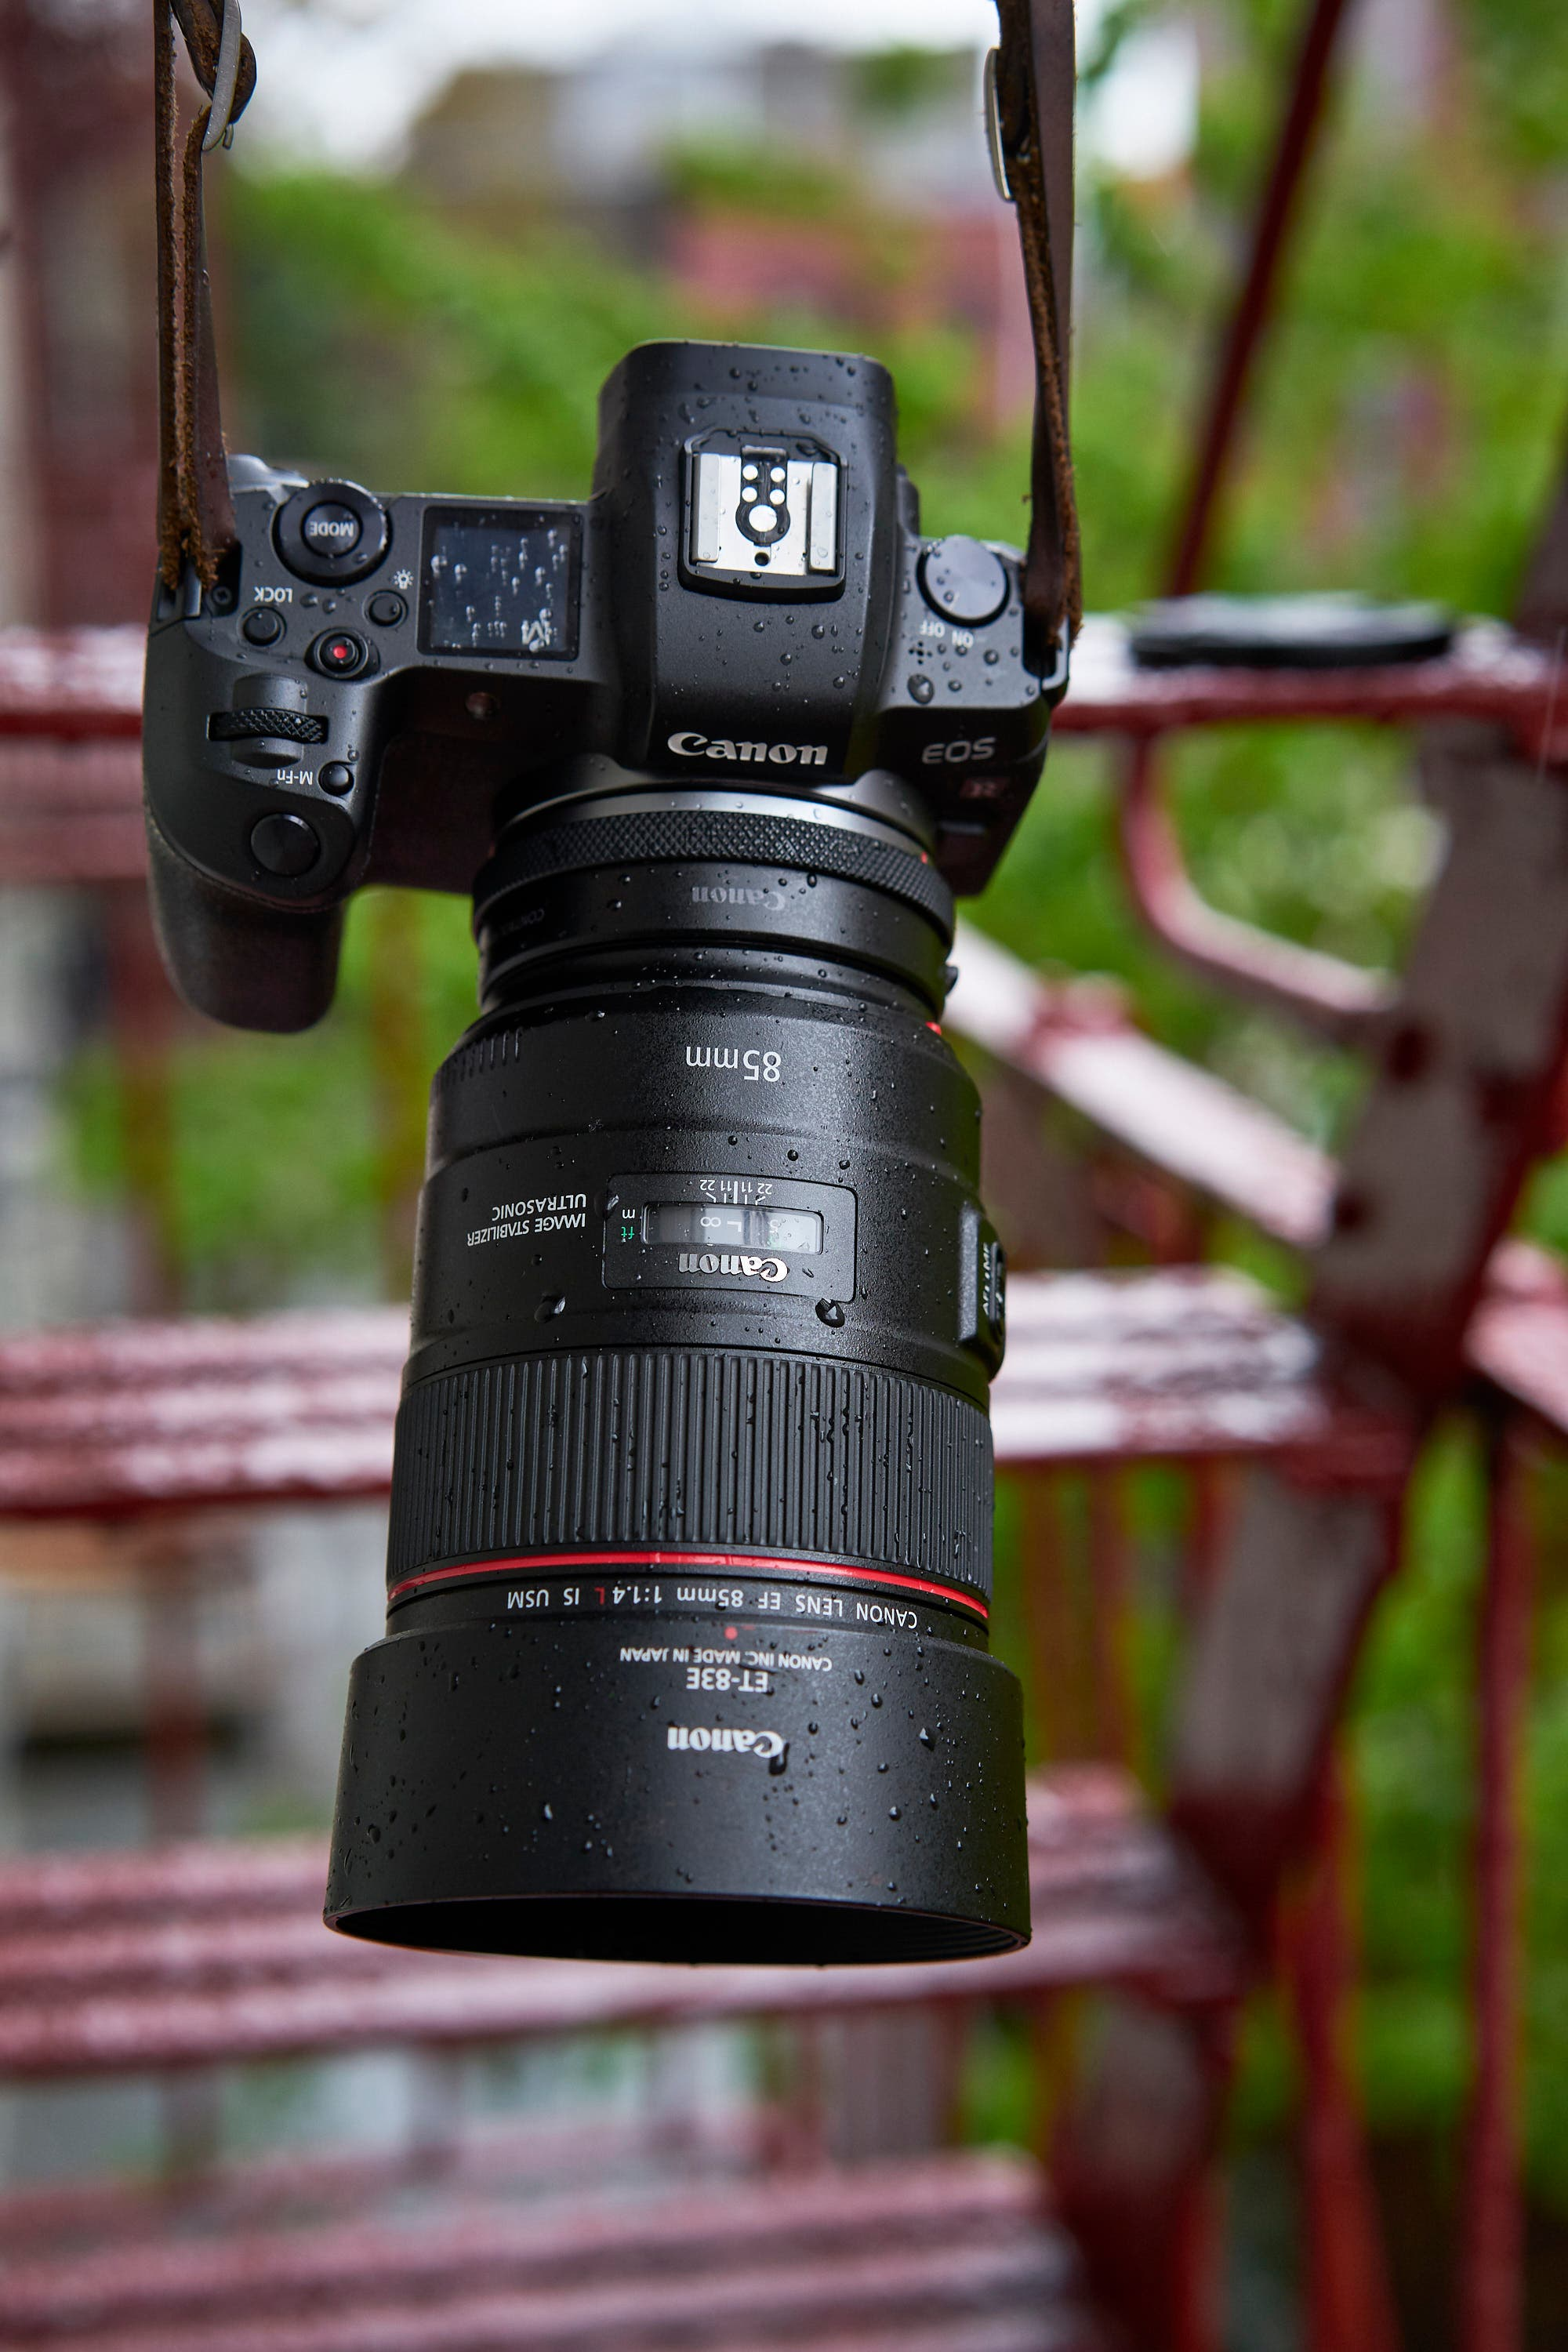 Review: Canon 85mm F1.4 L IS USM (Works Well with Eye Autofocus)